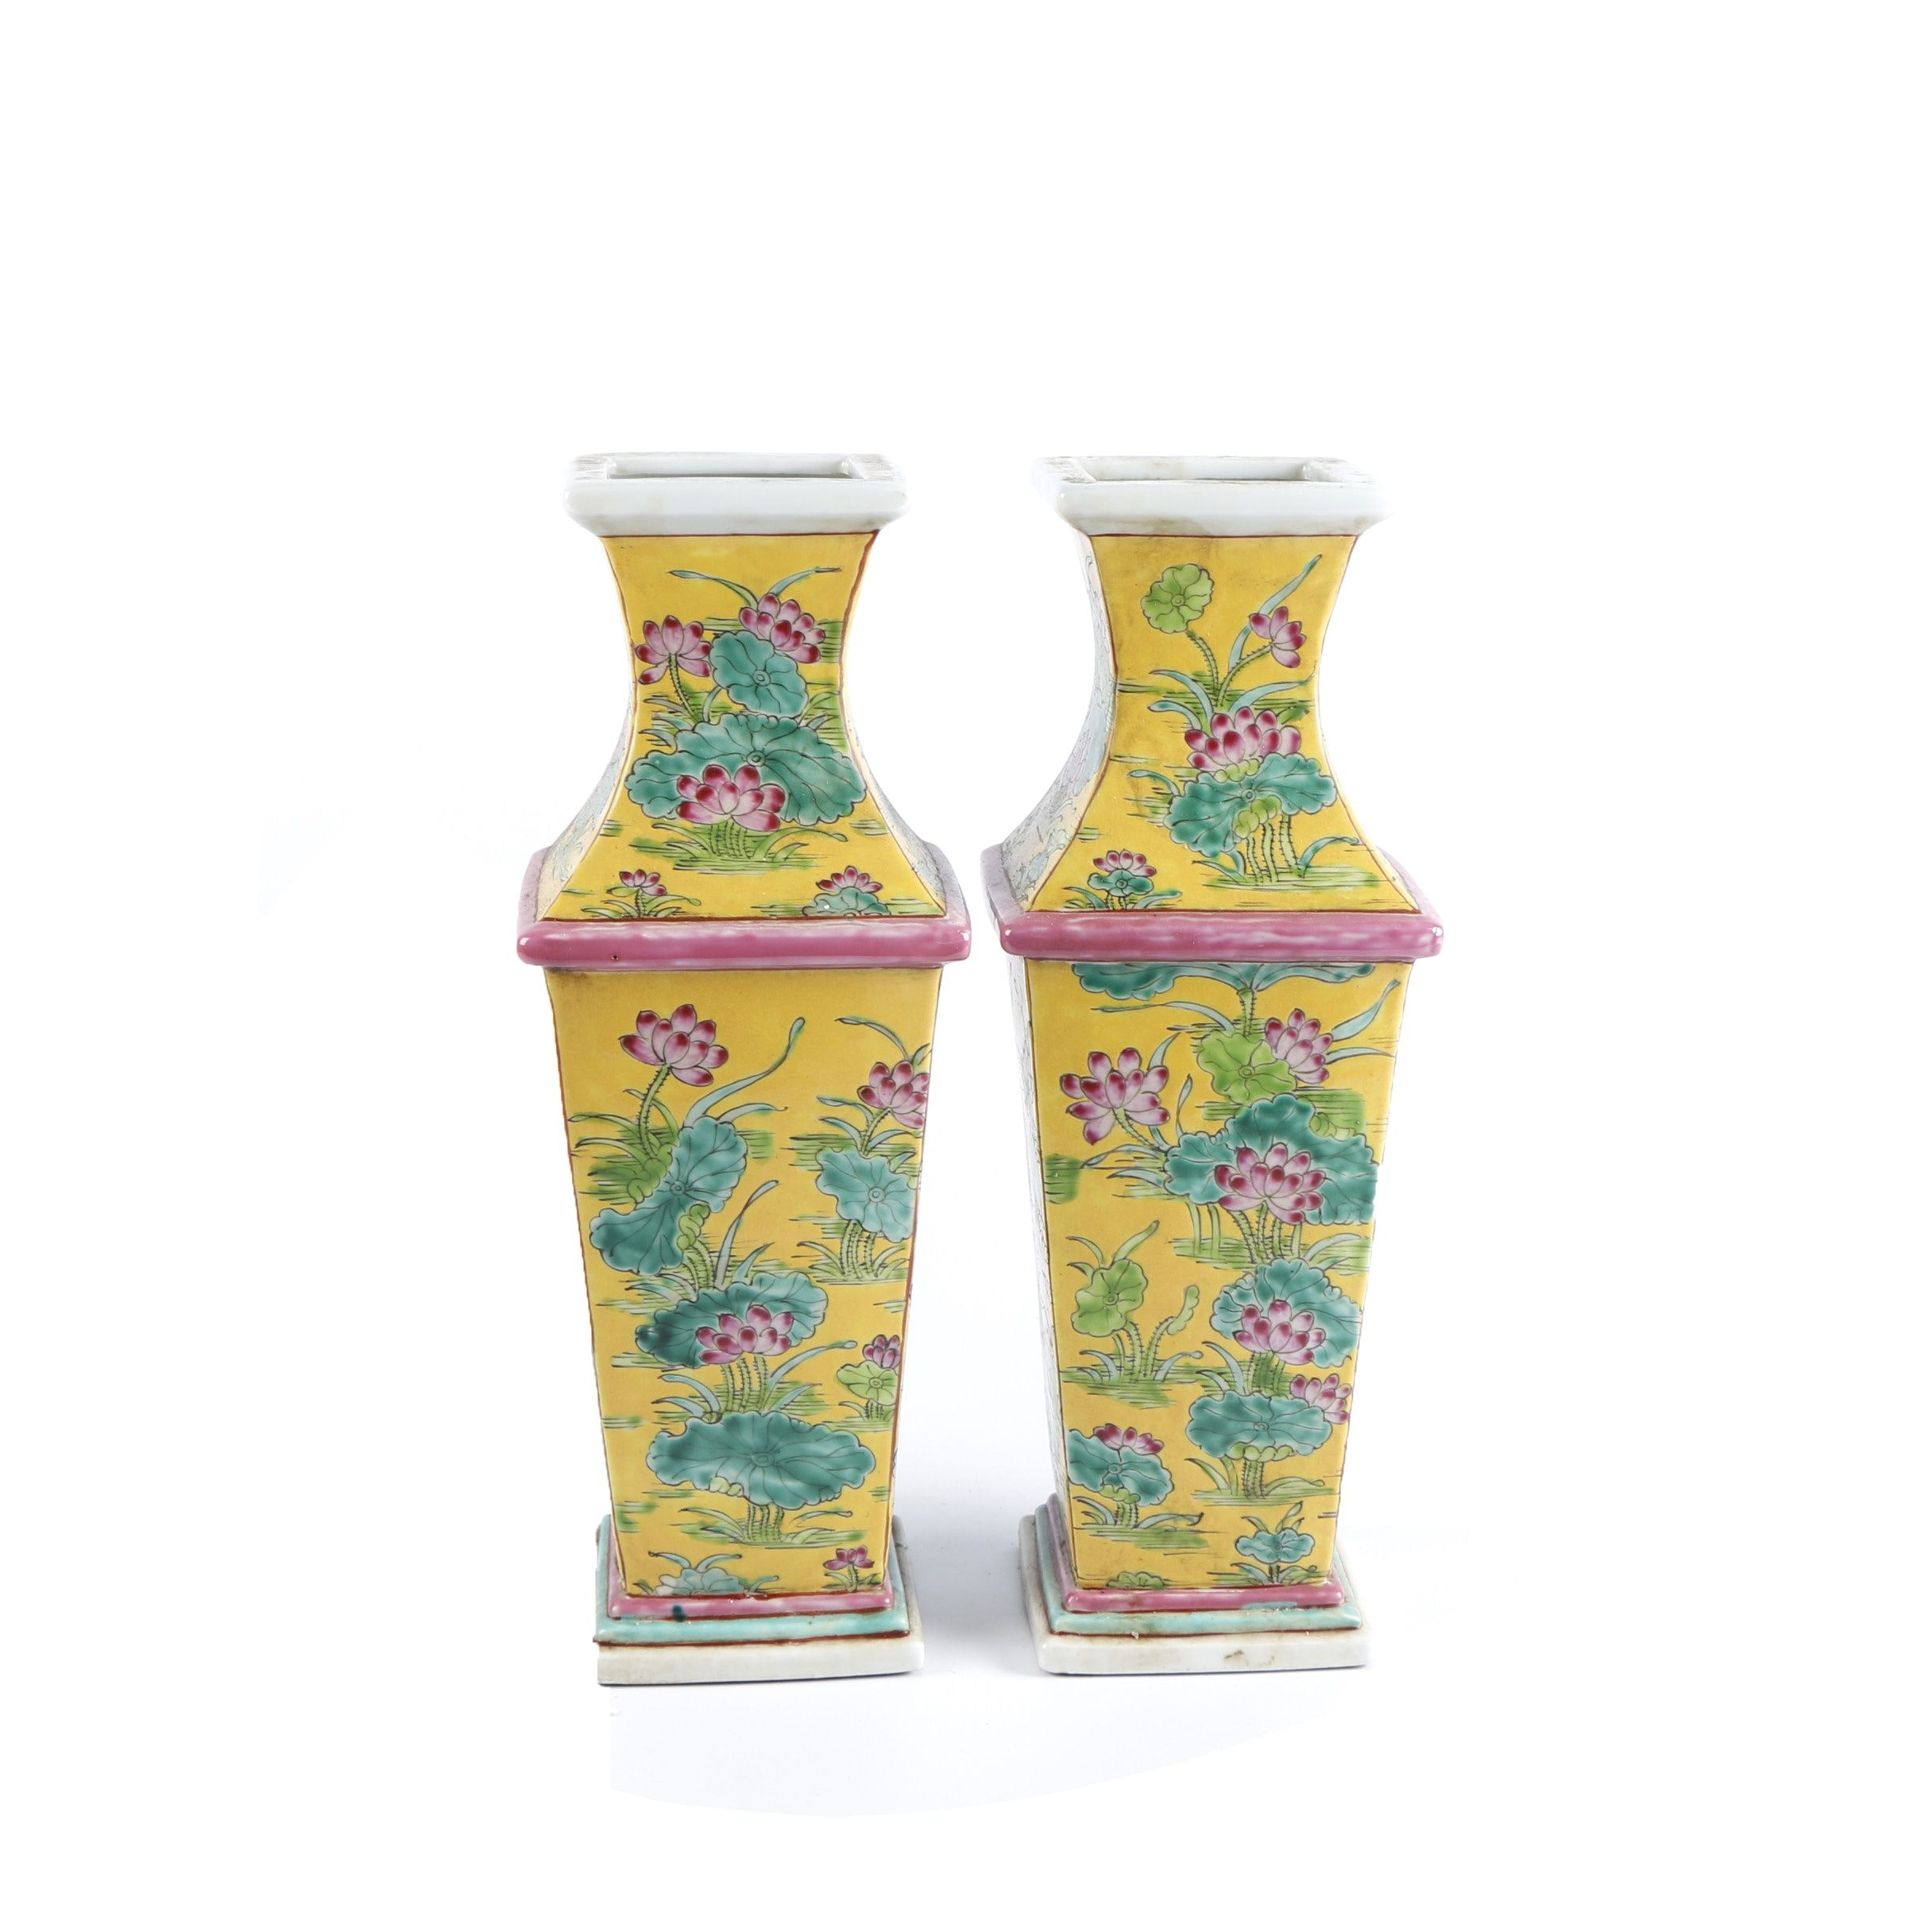 Chinese Famille Jaune Style Hand-Painted Porcelain Vases